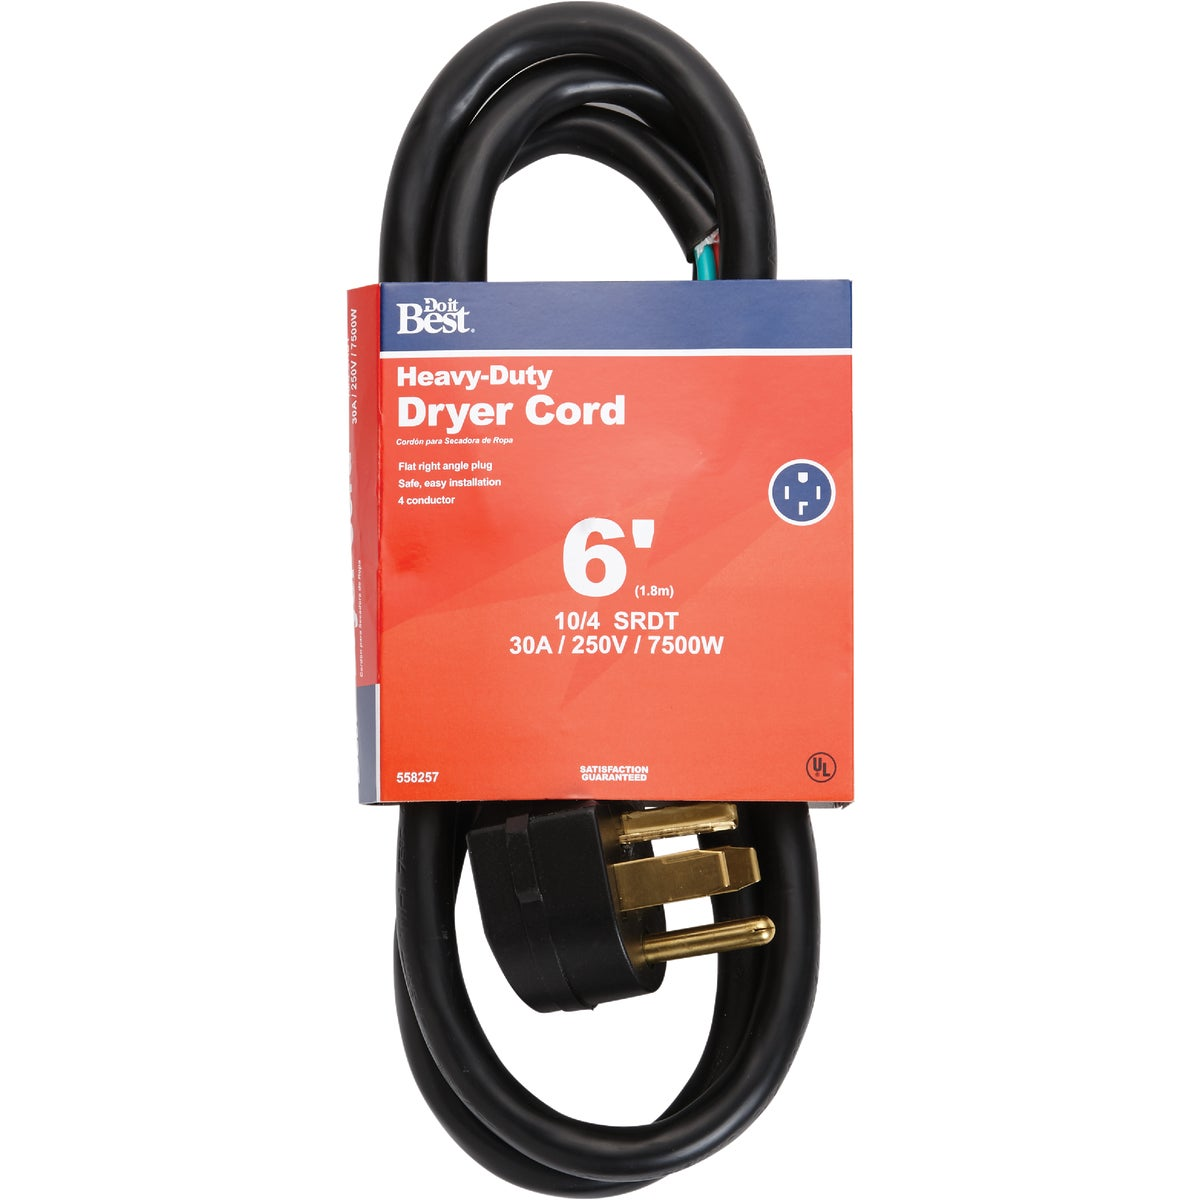 6' 10/4 DRYER CORD - 550769 by Coleman Cable Hwg